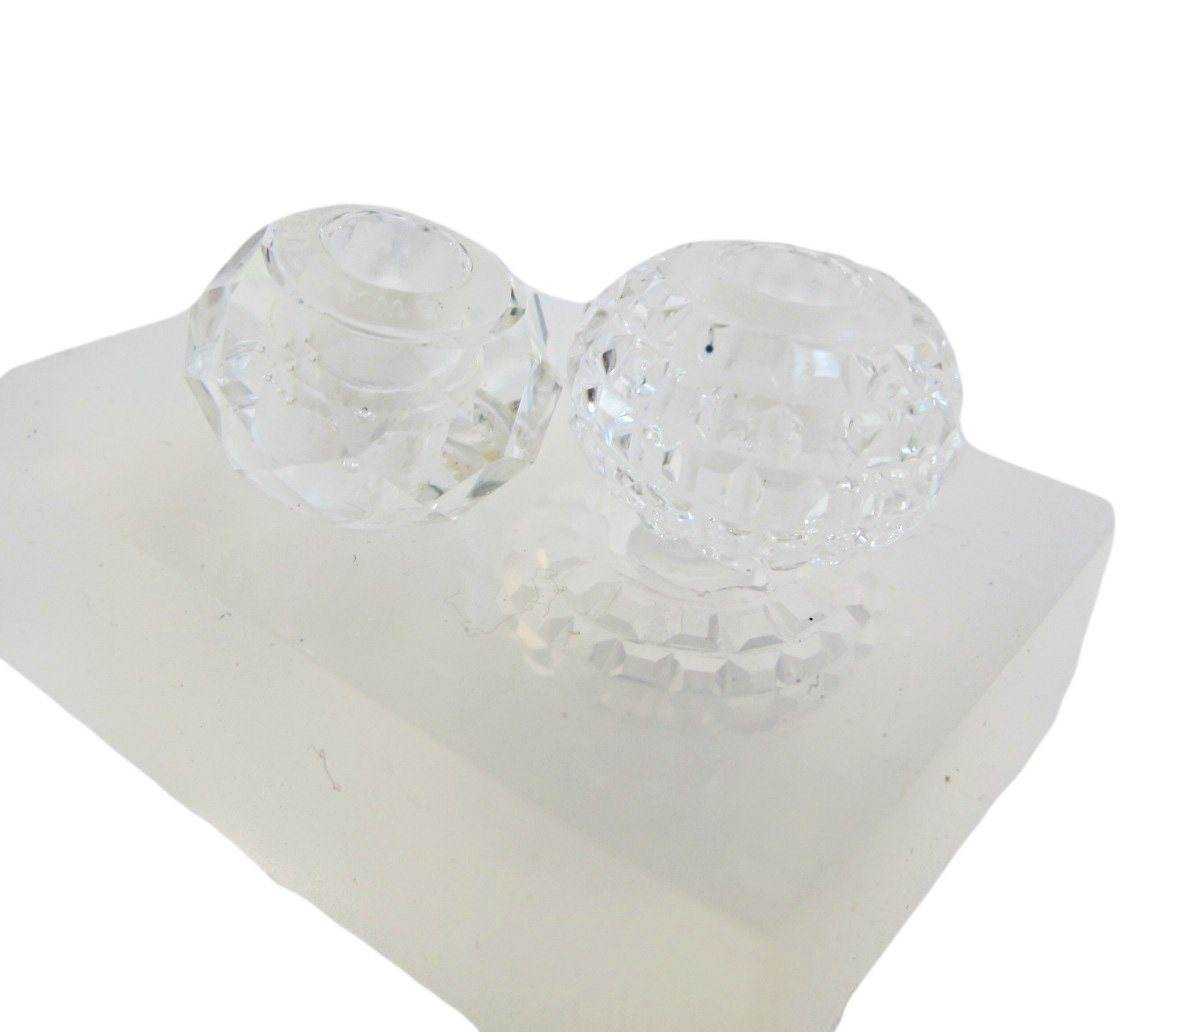 Faceted bead two styles reusable clear silicone mold